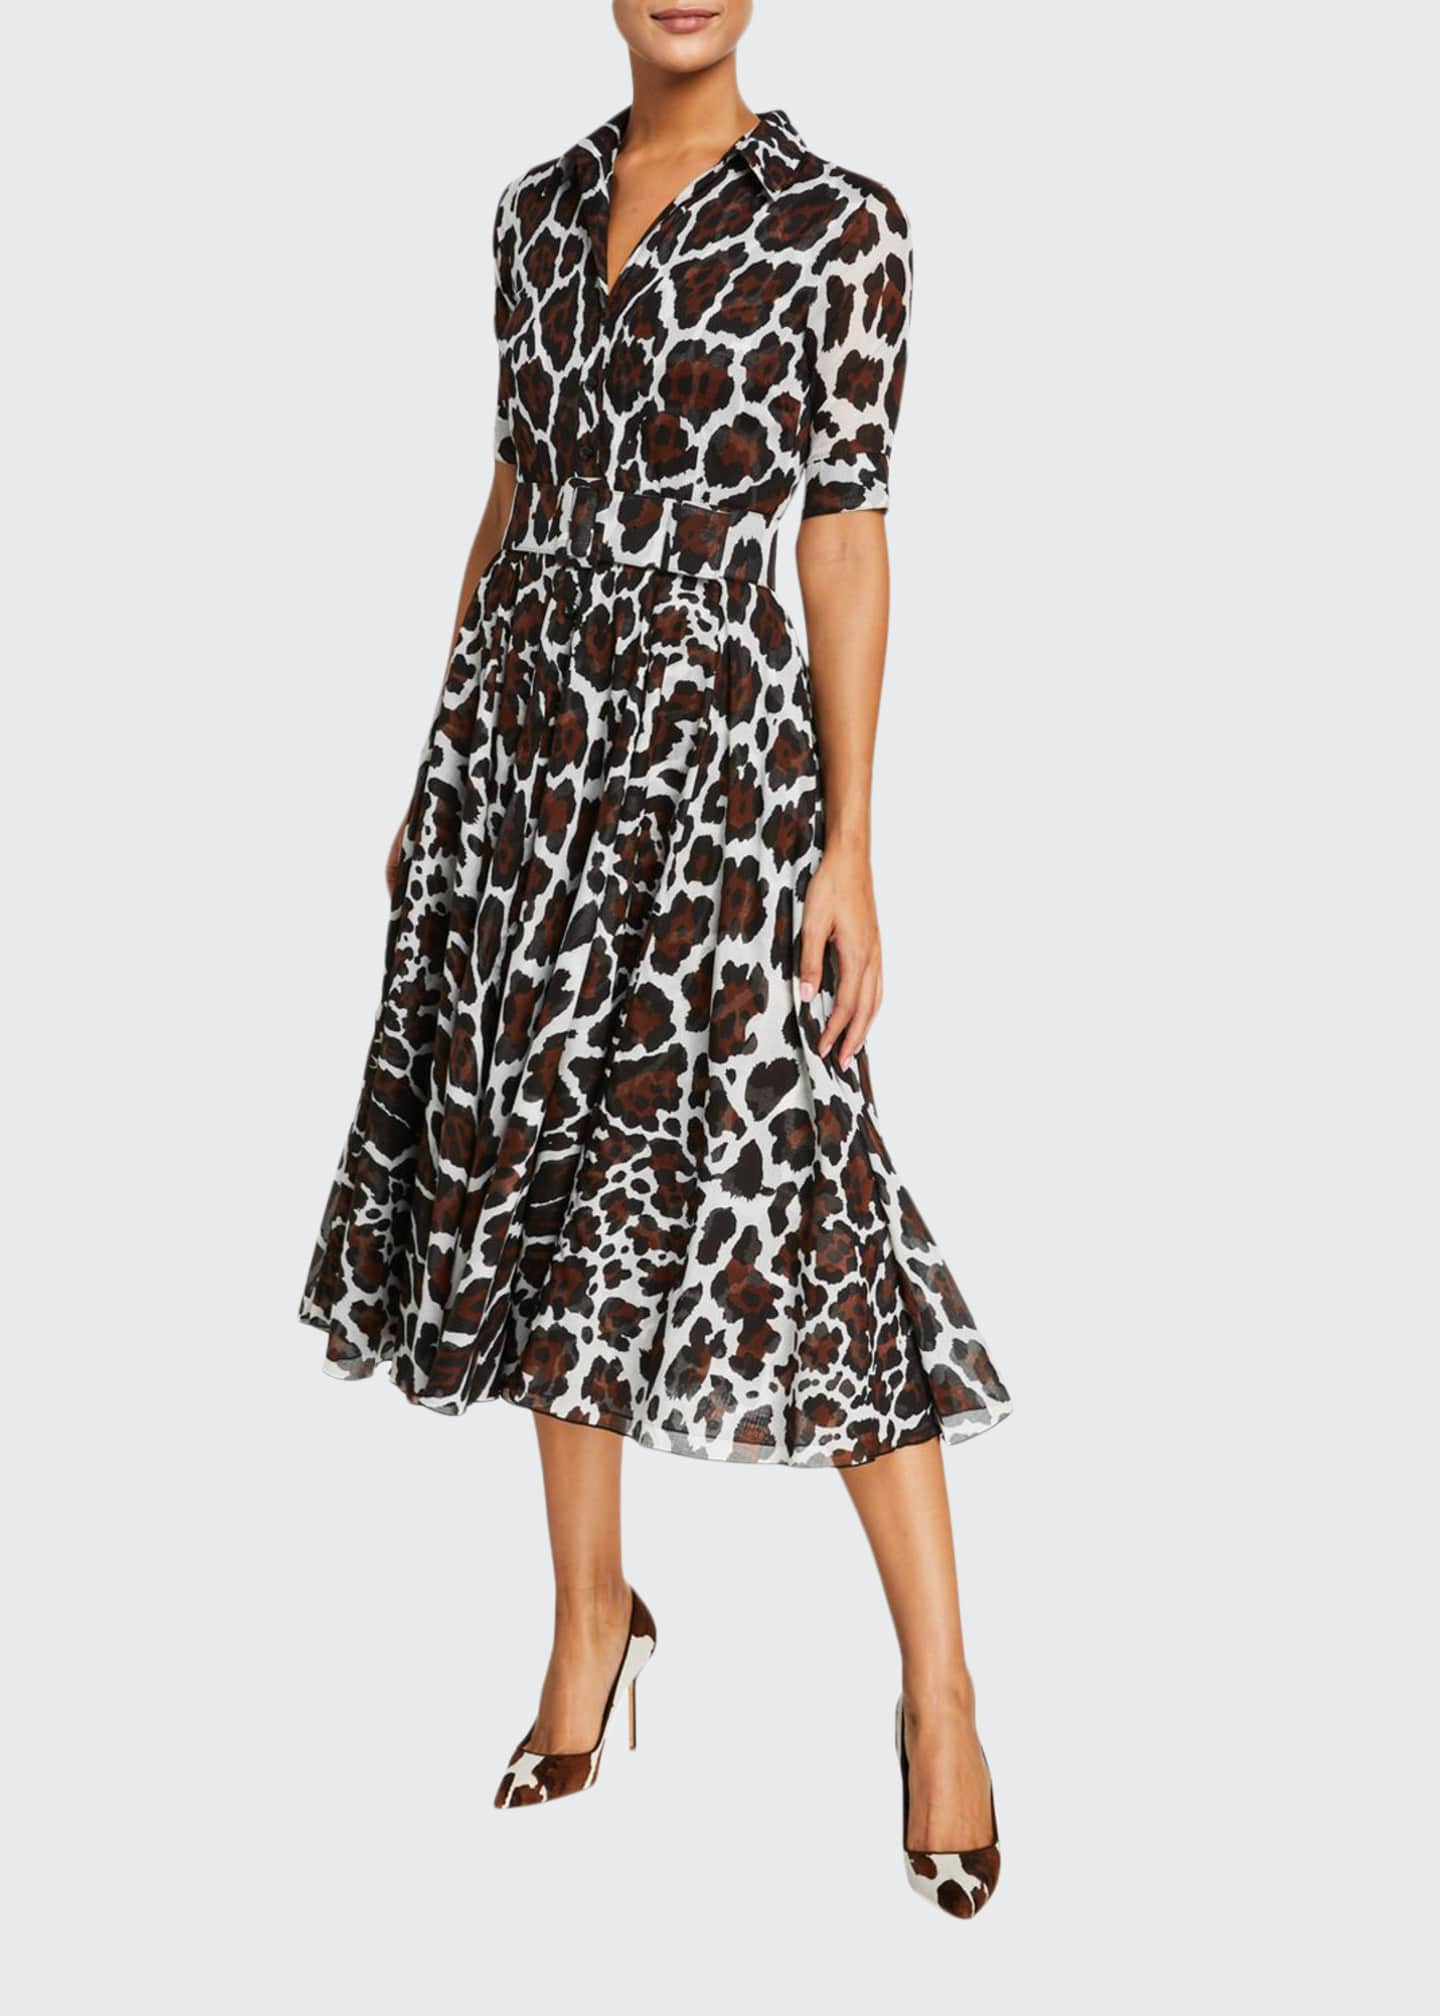 Samantha Sung Aster Jaguar Musola 1/2-Sleeve Midi Dress